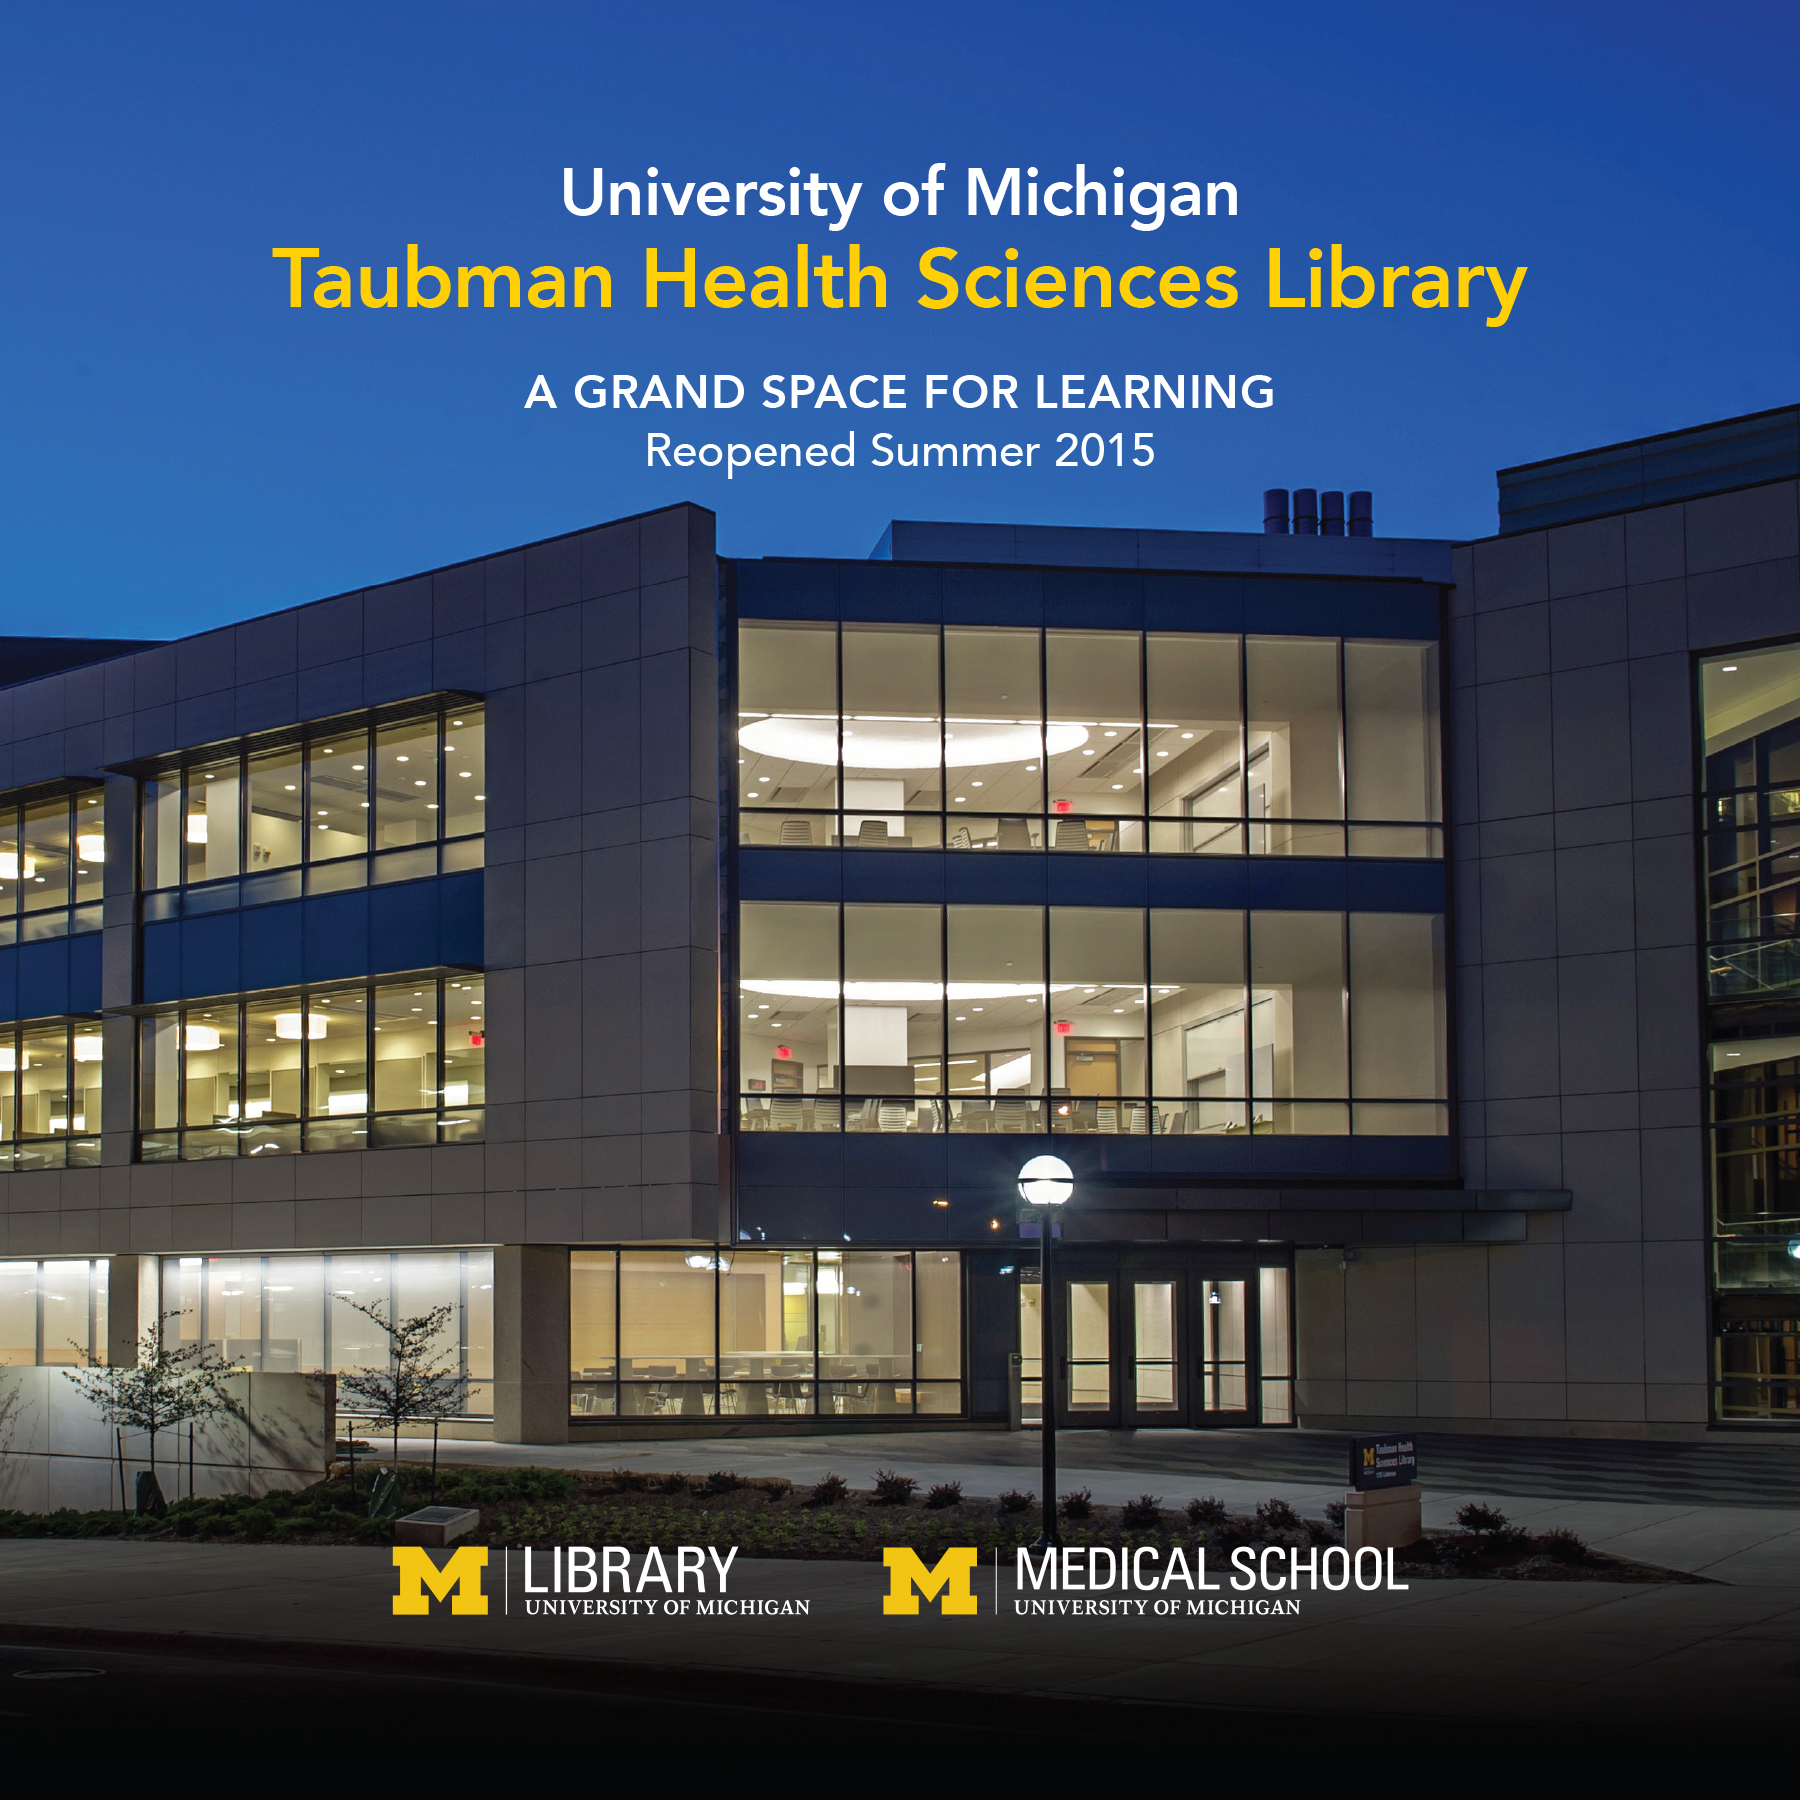 university of michigans taubman health sciences library 2015 re opening promo brochure cover